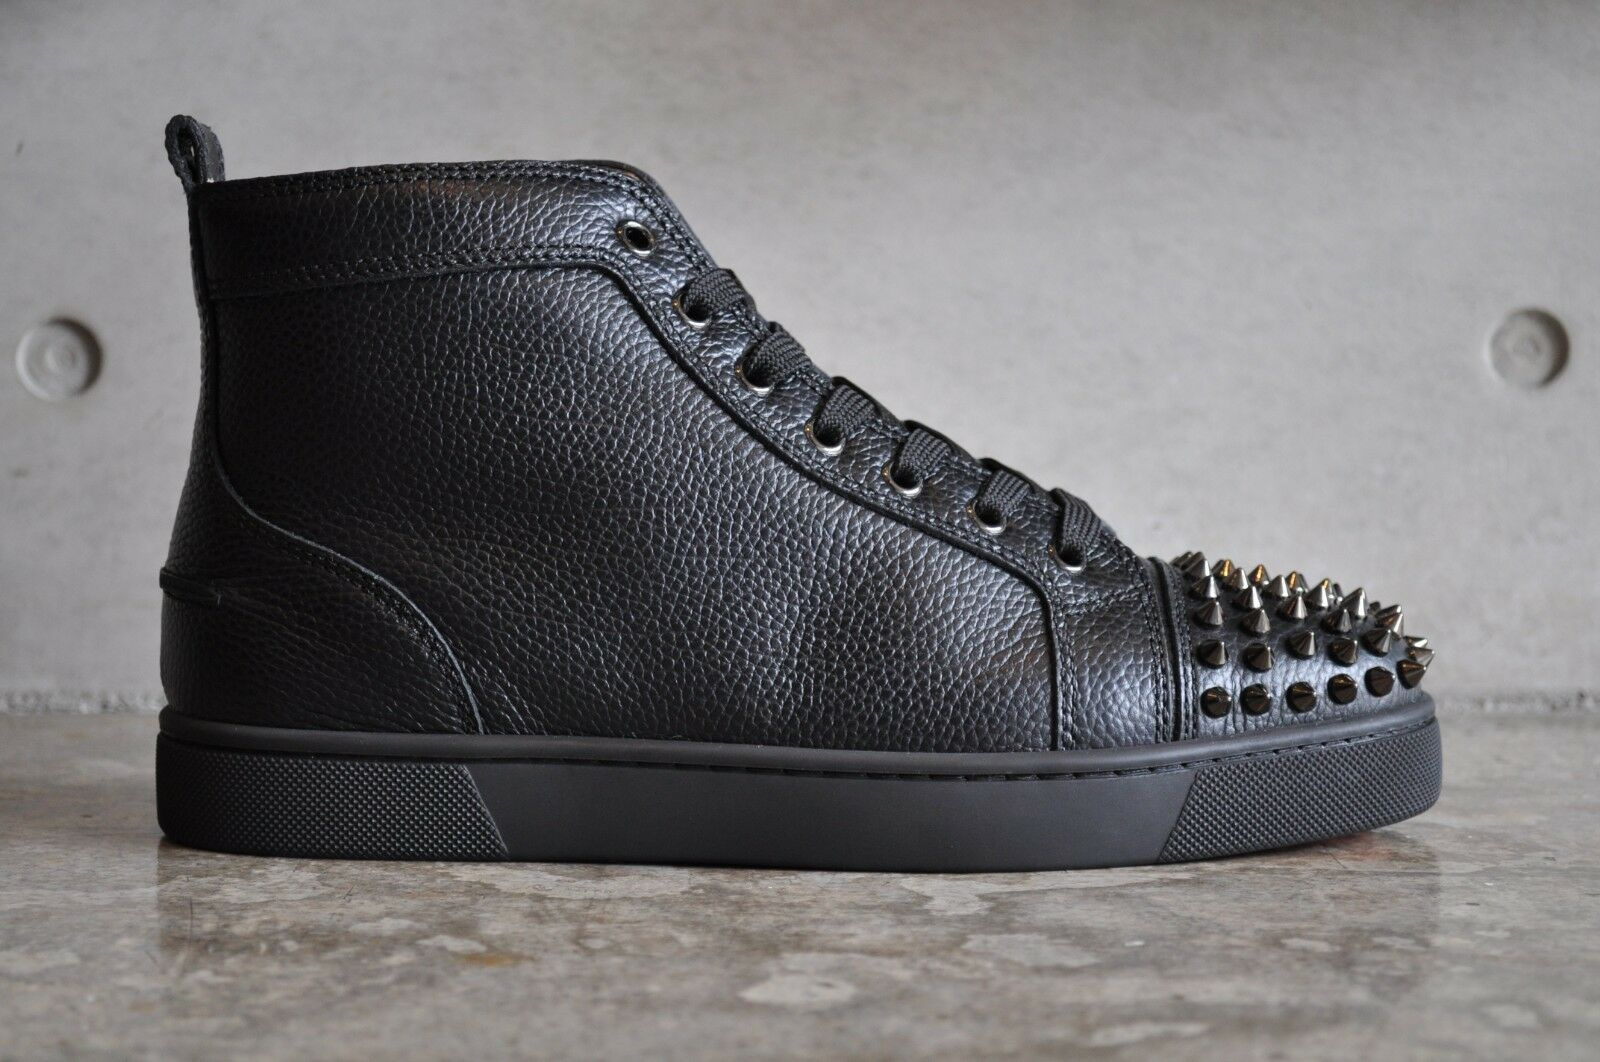 57945722c68 Christian Louboutin Lou Spikes Flat Calf Calf Calf Graine High Top - Black  40 EUR 768295 ...